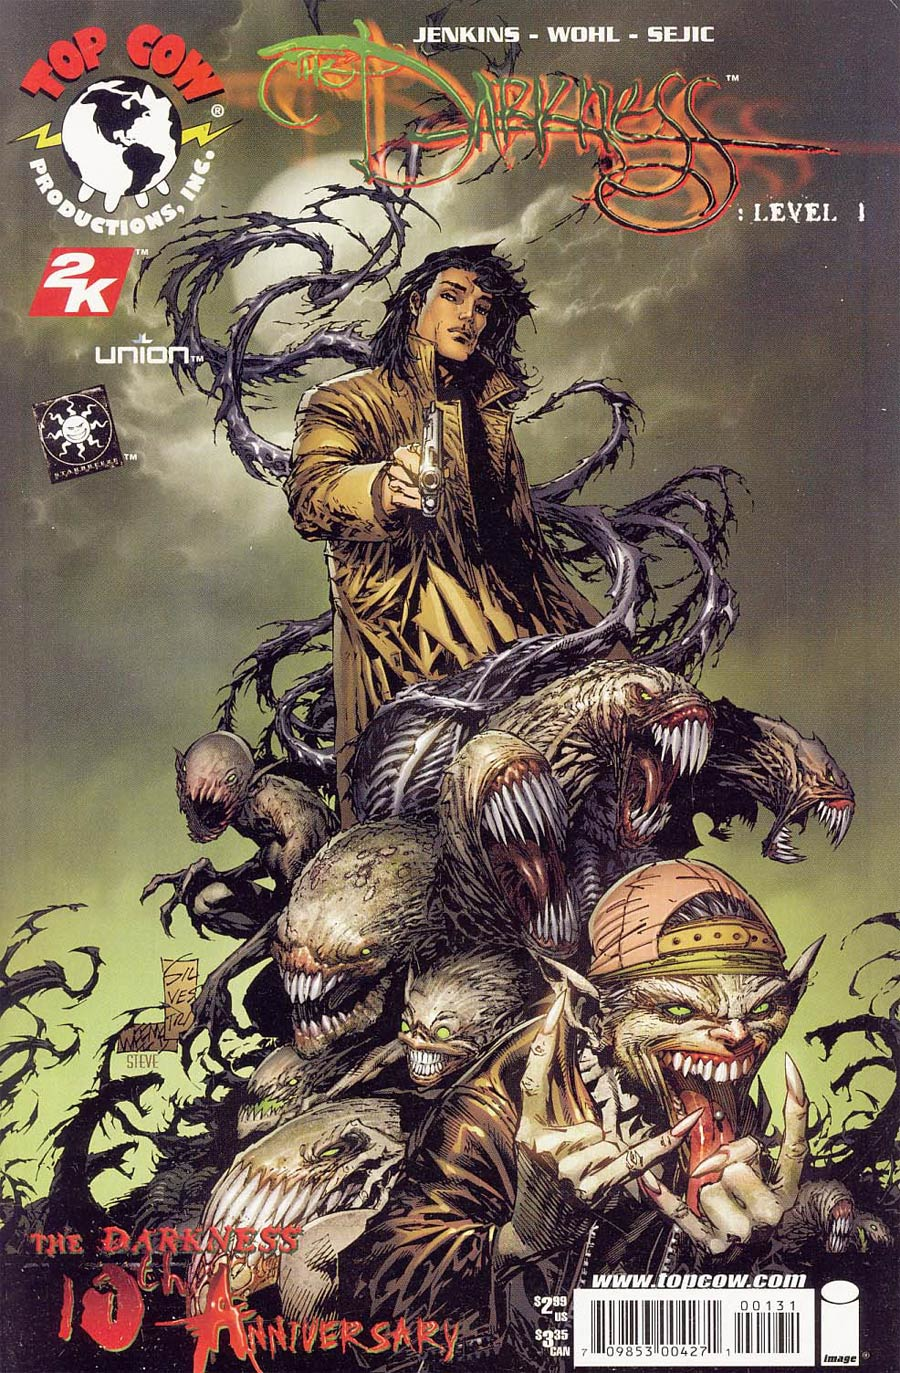 Darkness Level 1 Cover C Marc Silvestri Cover